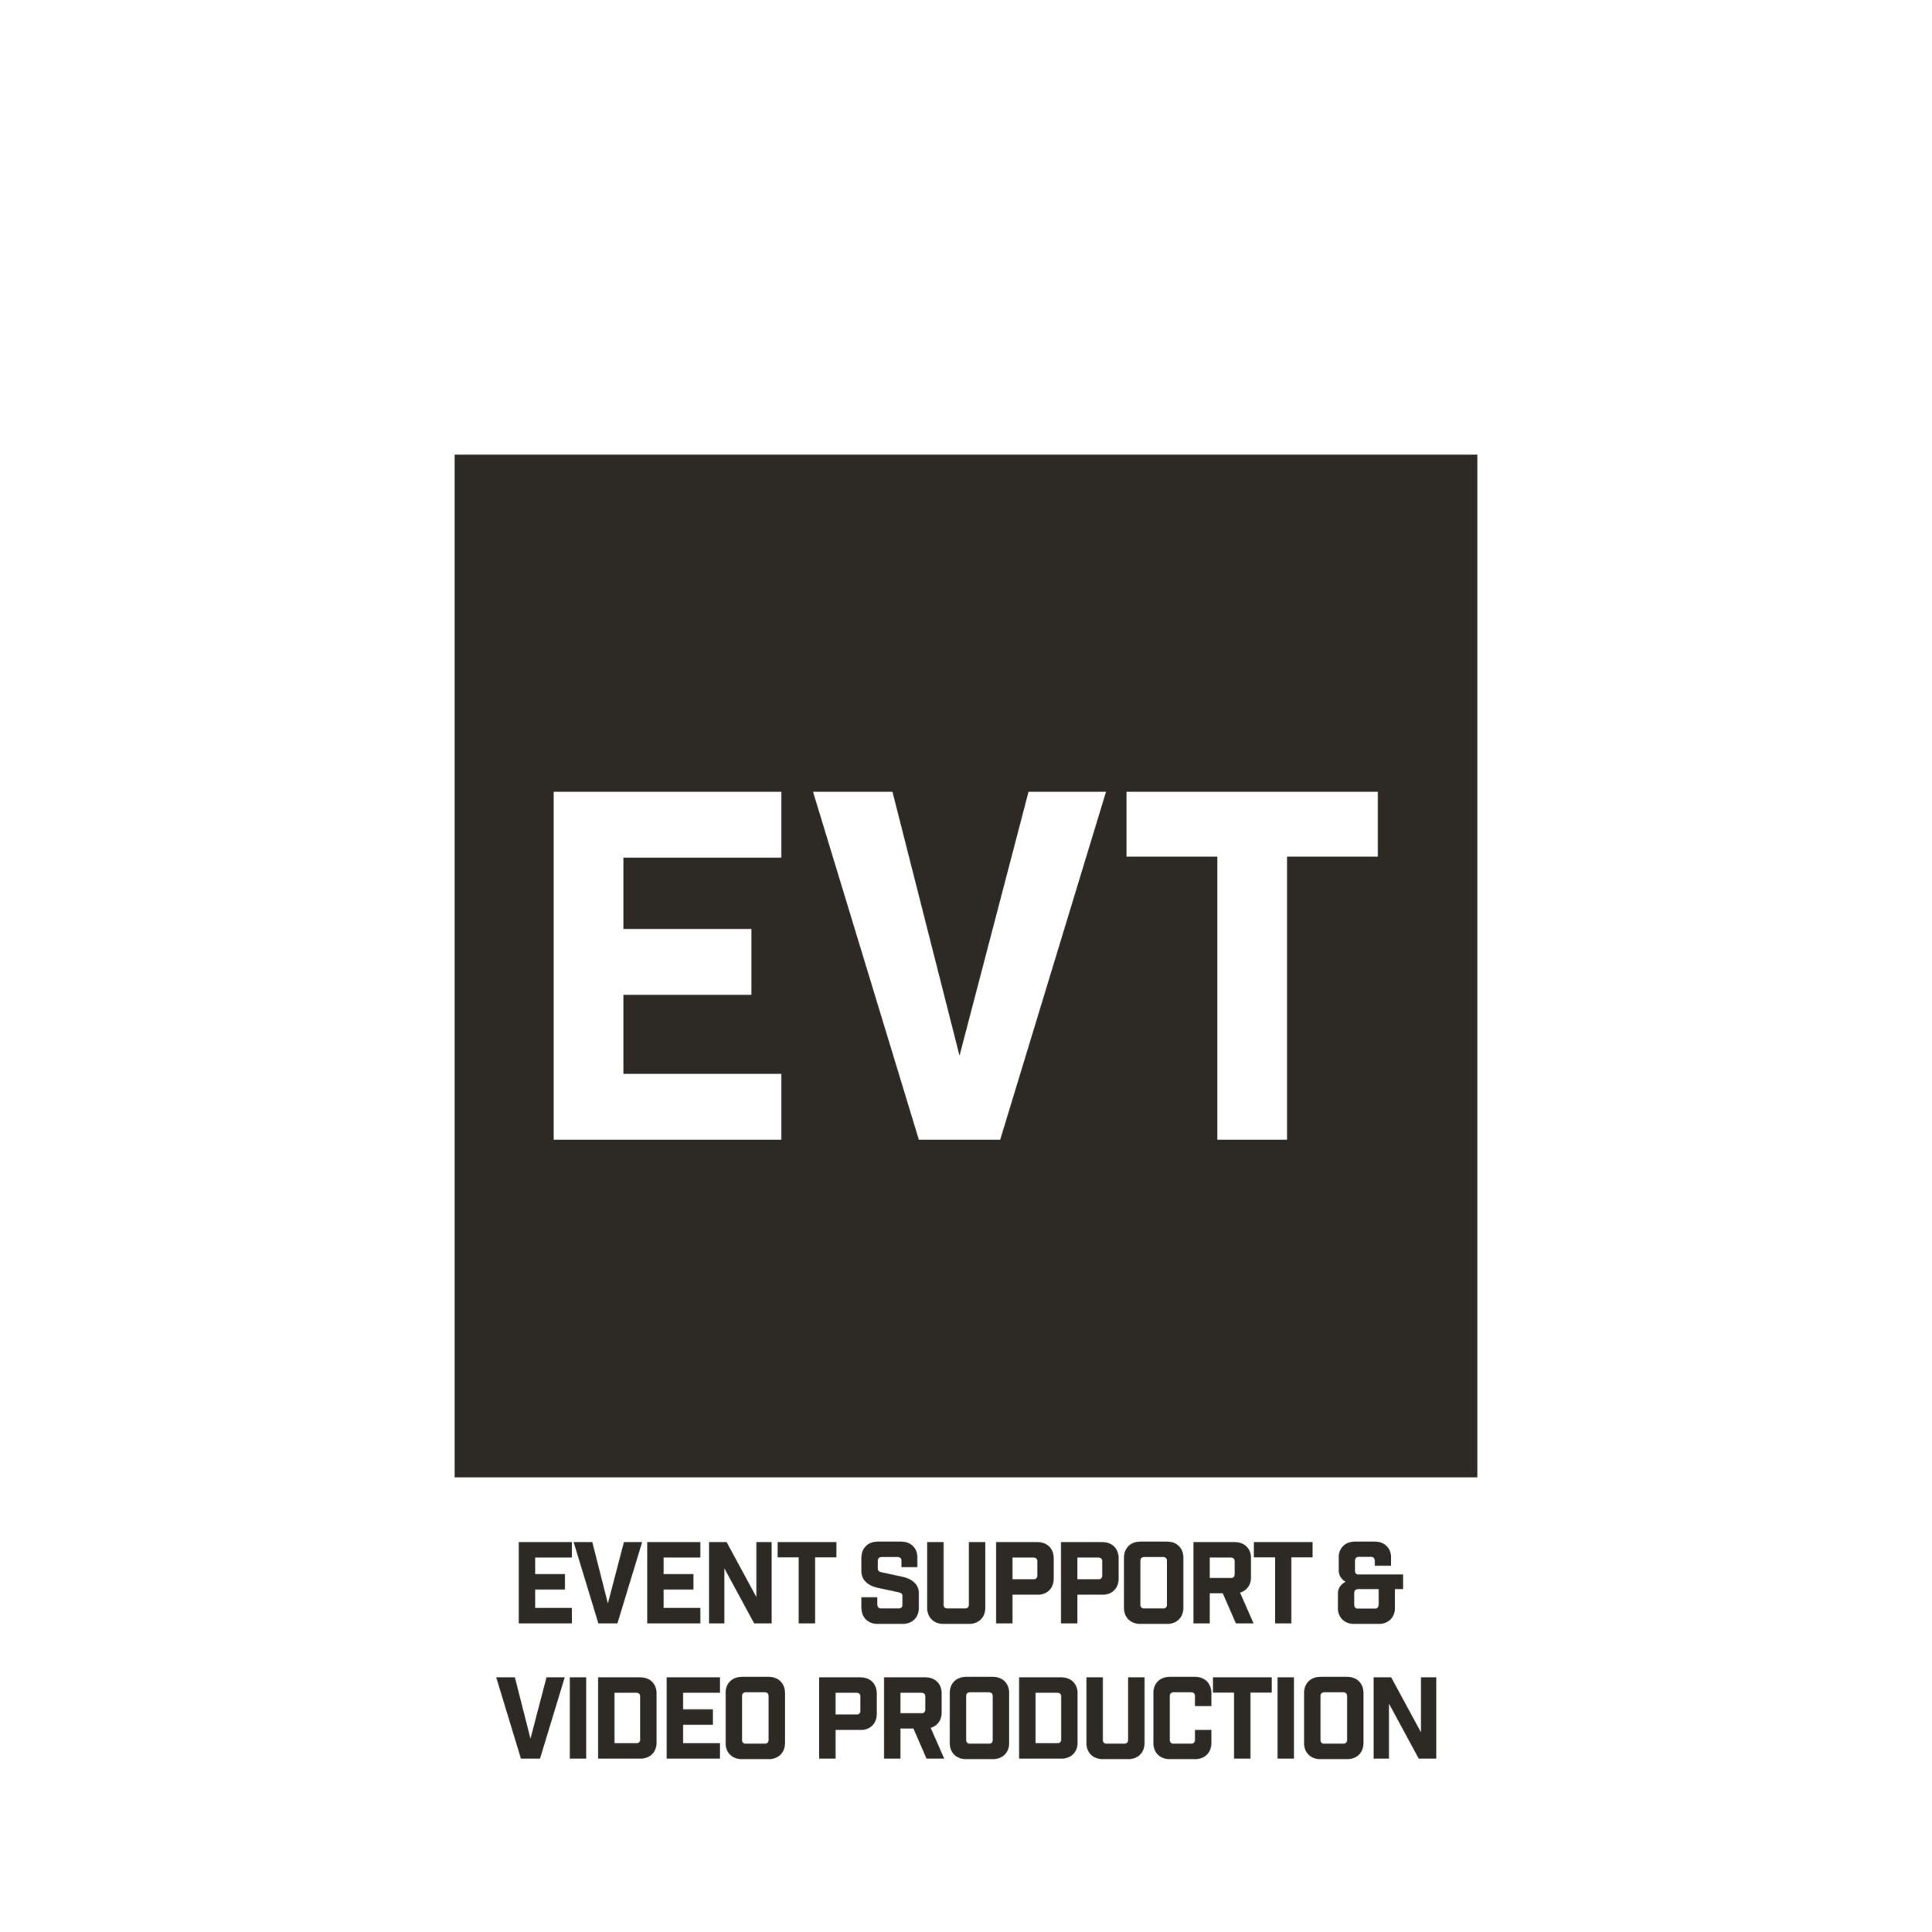 - Our Event Support and Video Production division creates and captures amazing experiences for audiences and viewers across the globe.